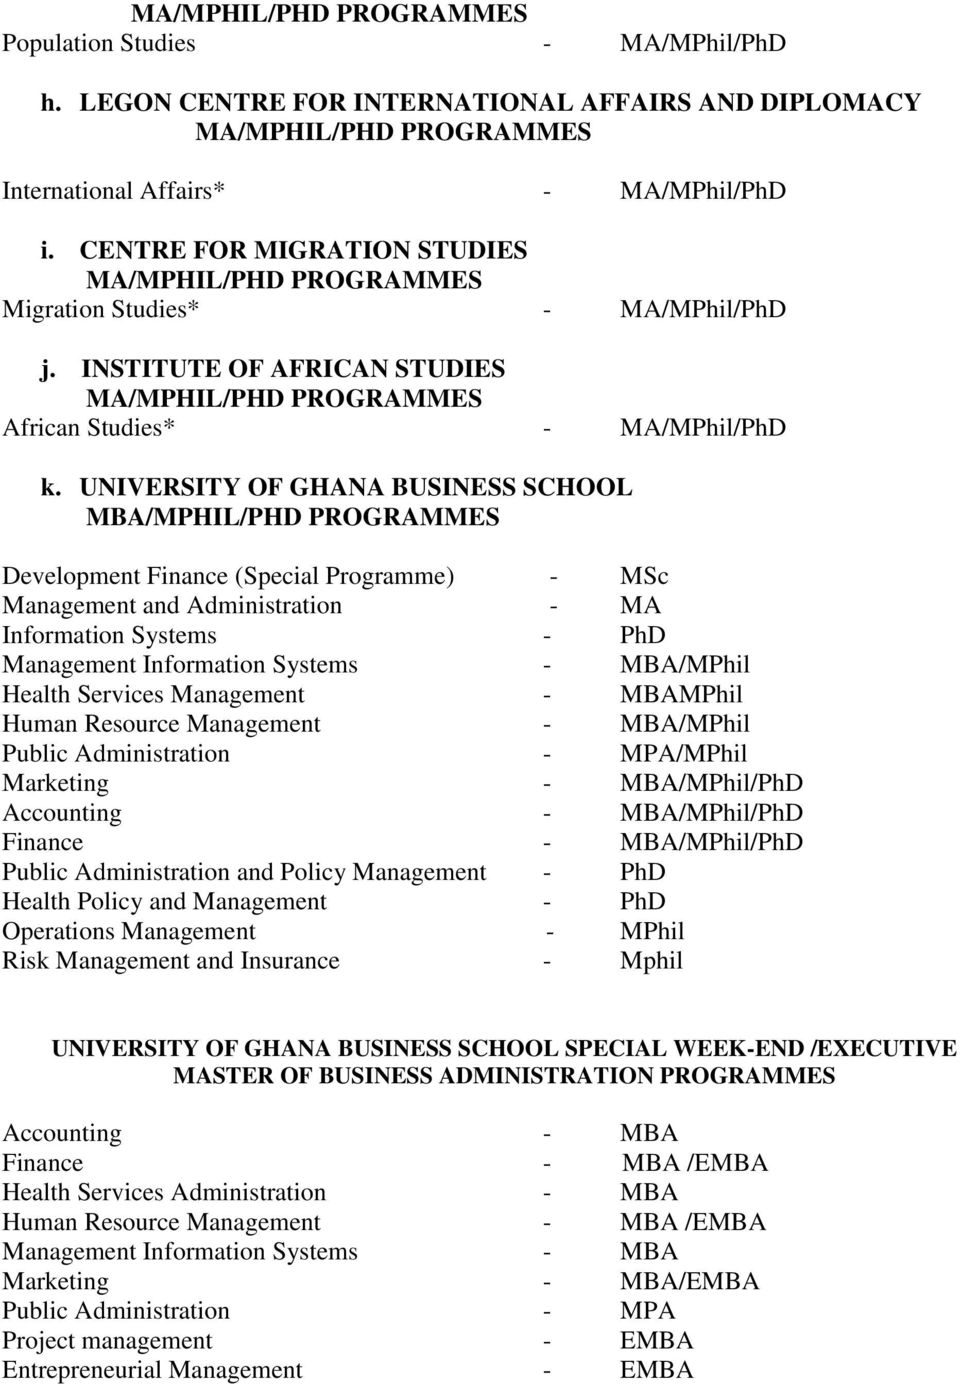 UNIVERSITY OF GHANA BUSINESS SCHOOL MBA/MPHIL/PHD PROGRAMMES Development Finance (Special Programme) - MSc Management and Administration - MA Information Systems - PhD Management Information Systems